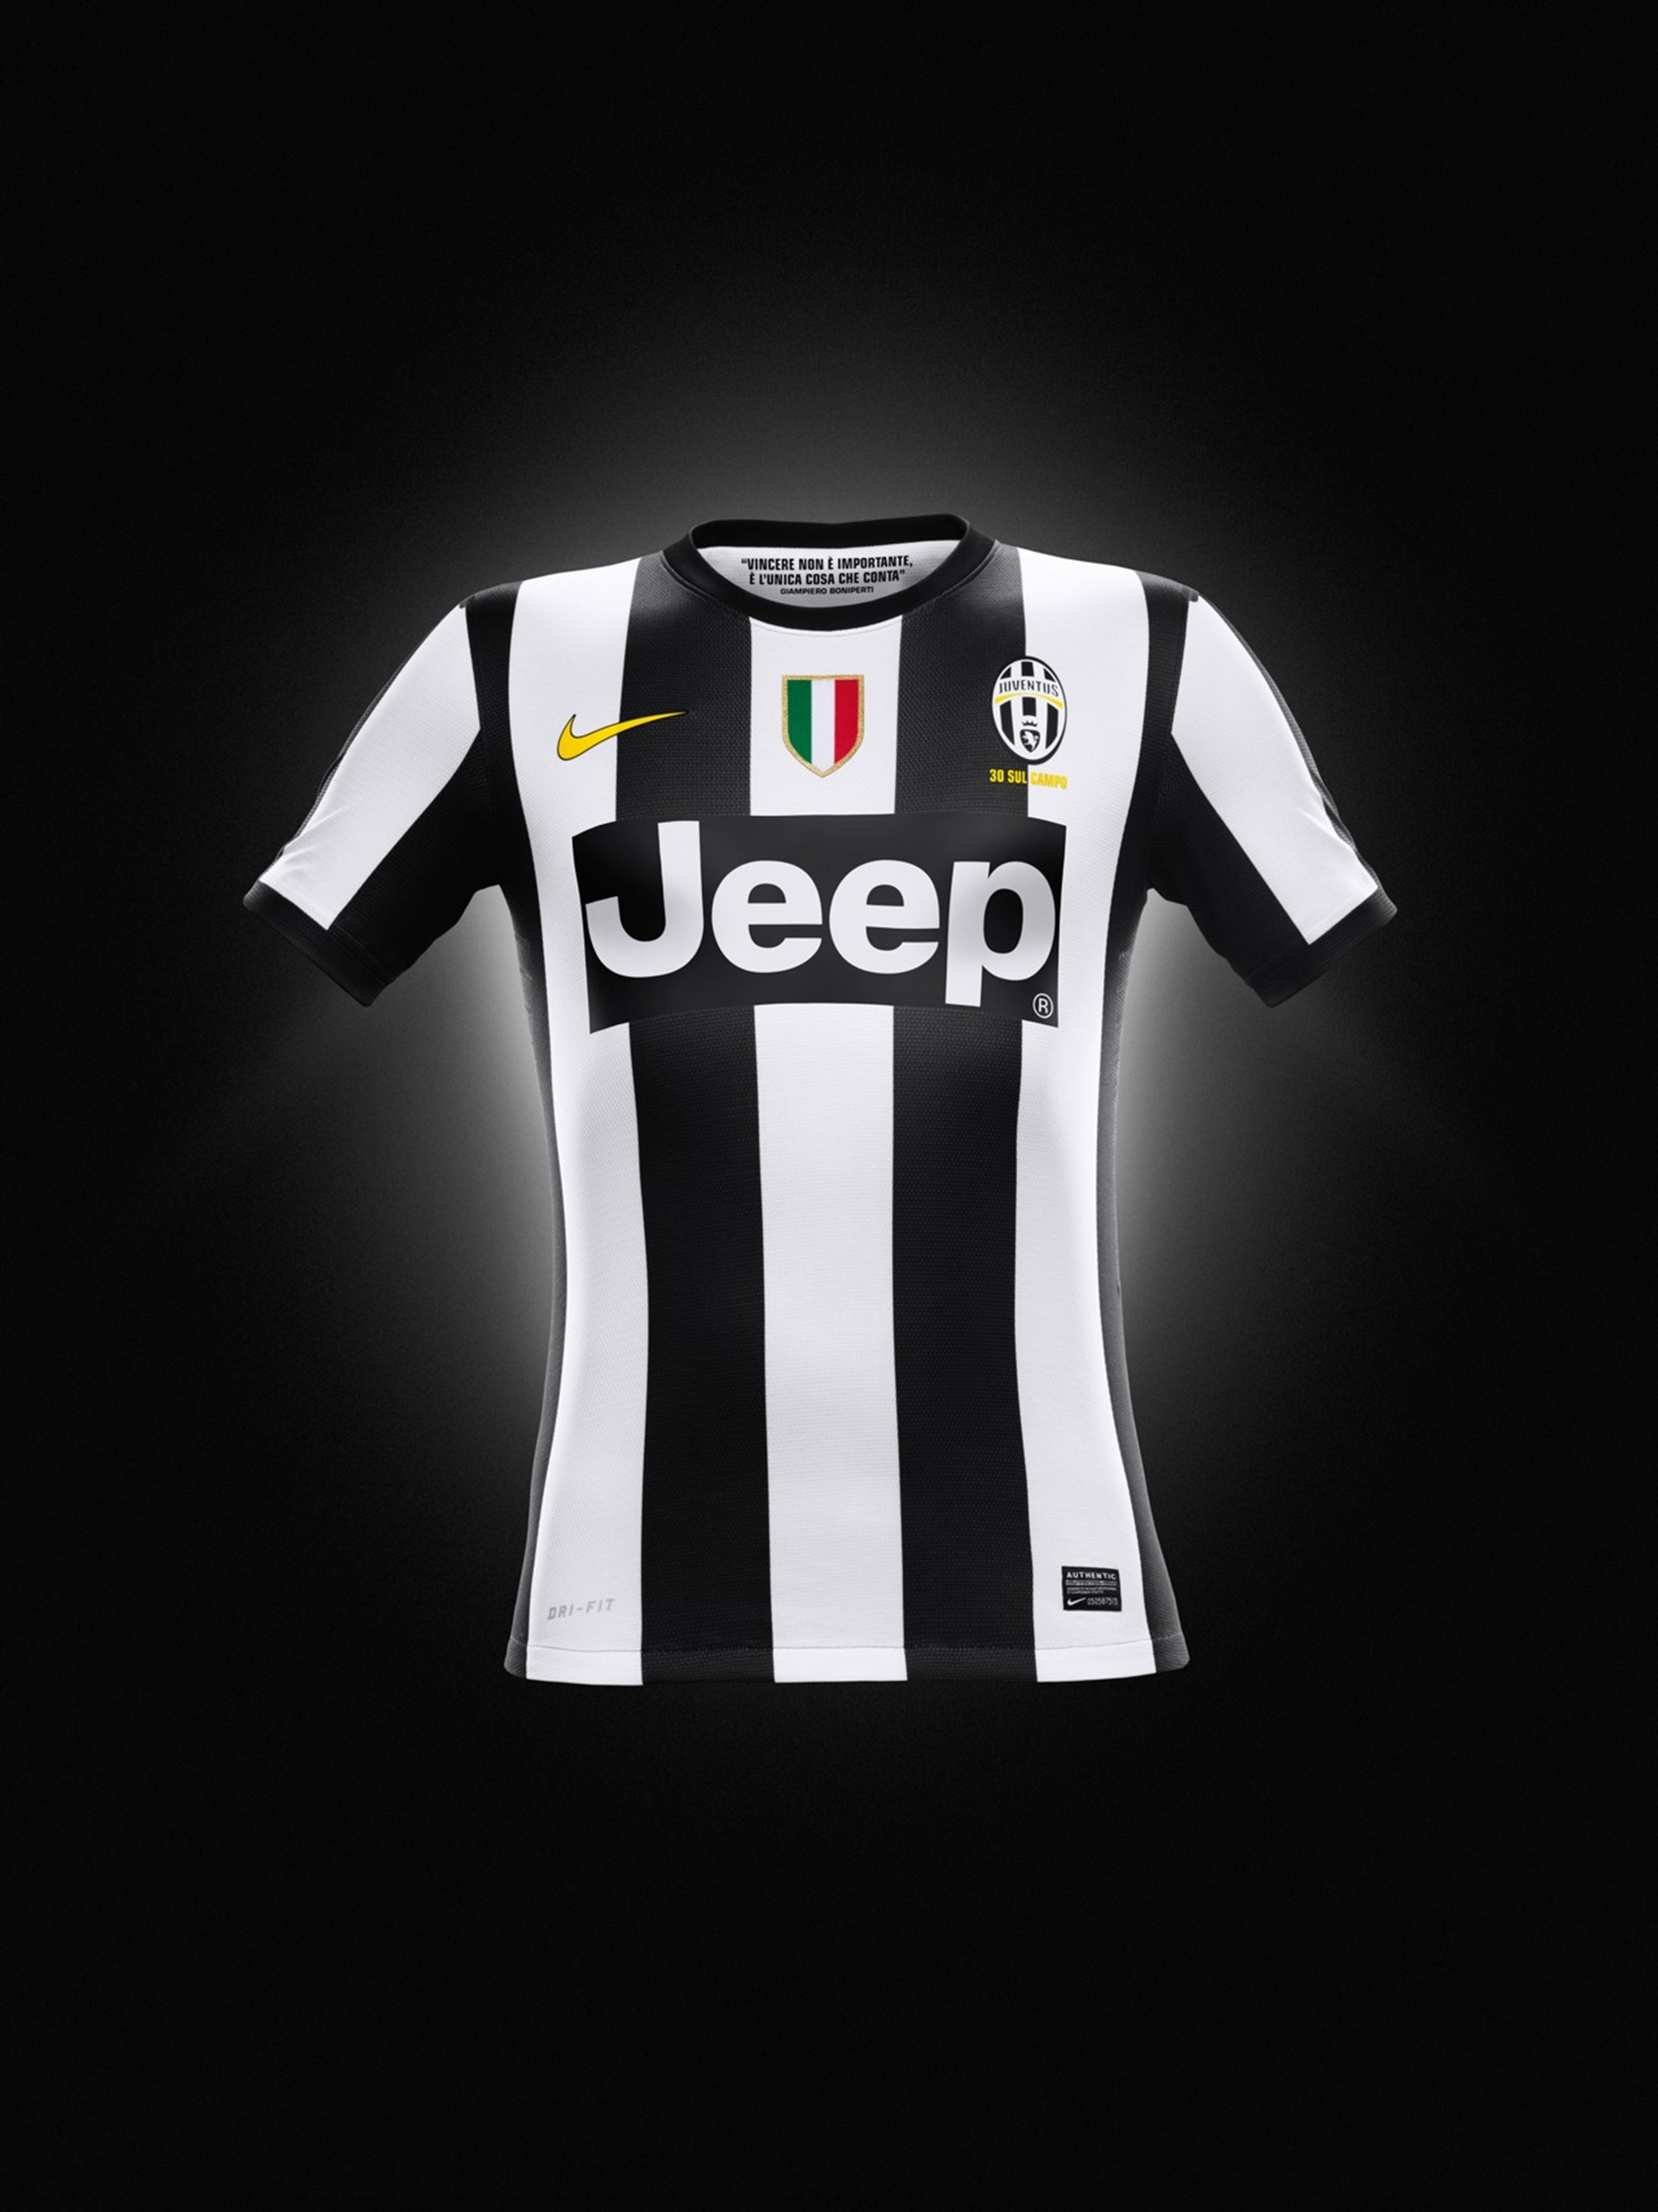 The Jeep® Brand Debuts on the Juventus Home Jersey